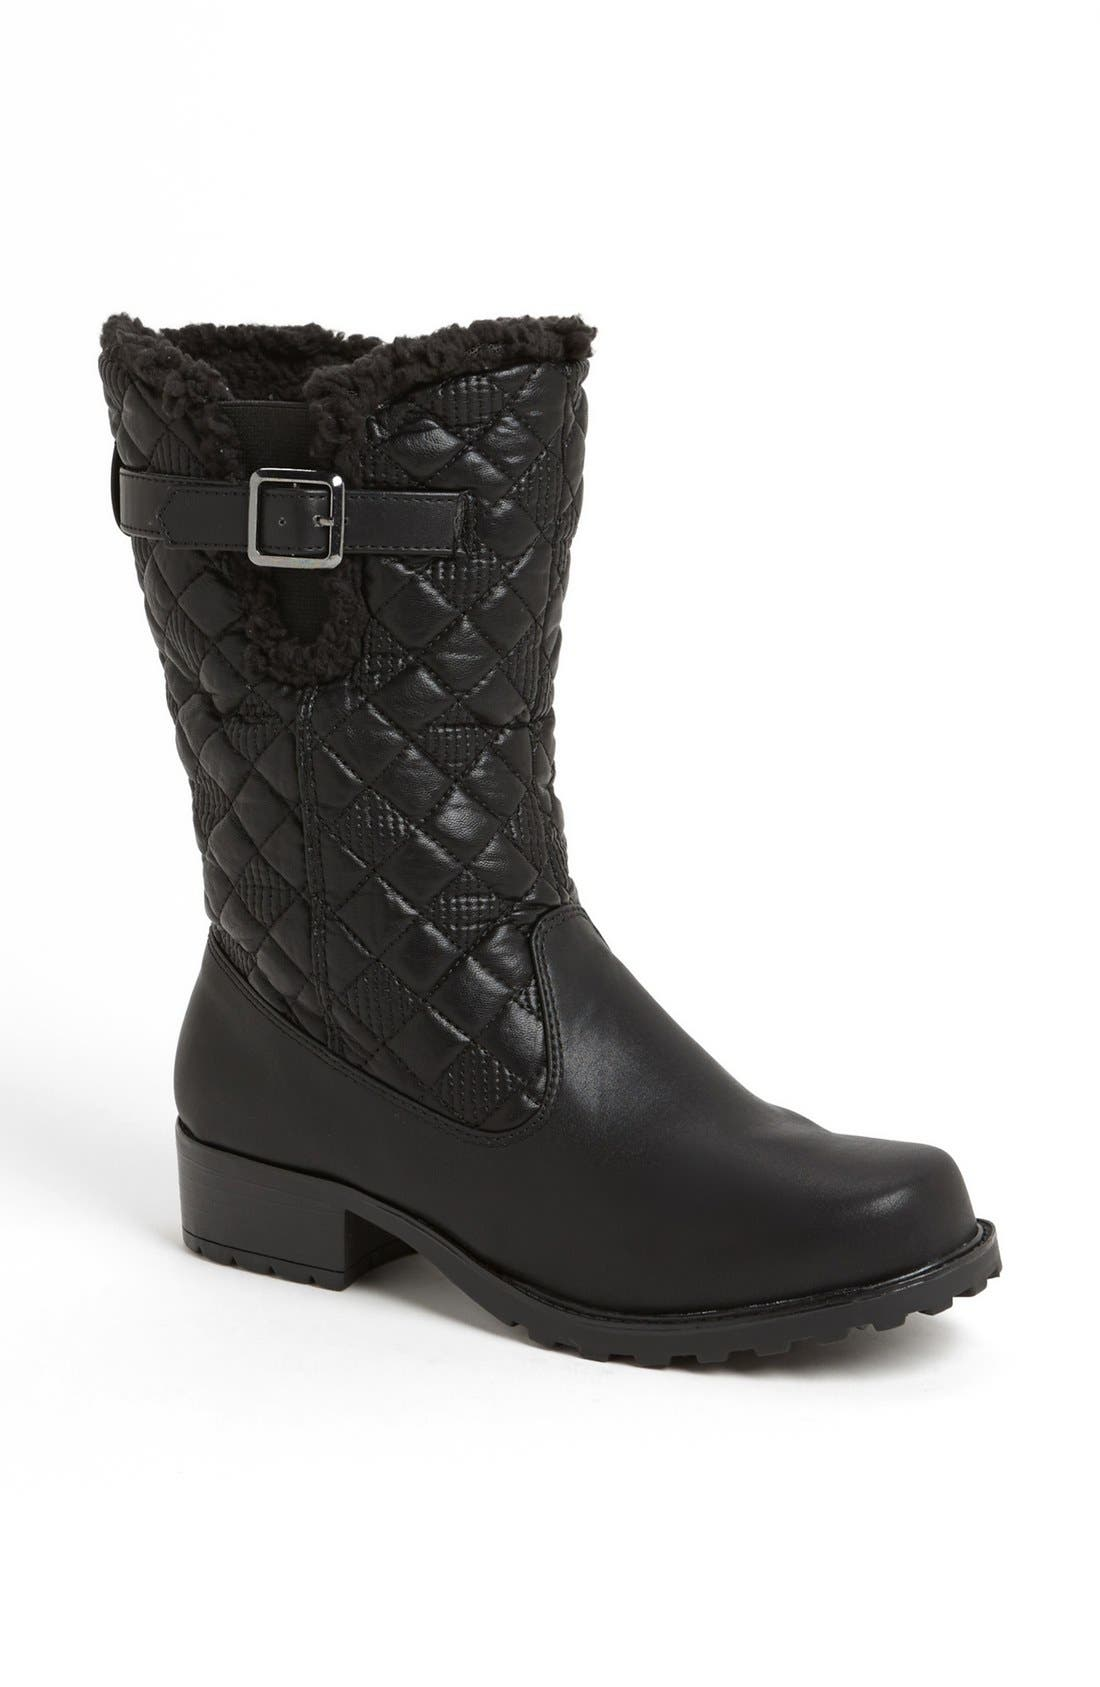 'Blizzard III' Boot,                         Main,                         color, BLACK FAUX LEATHER